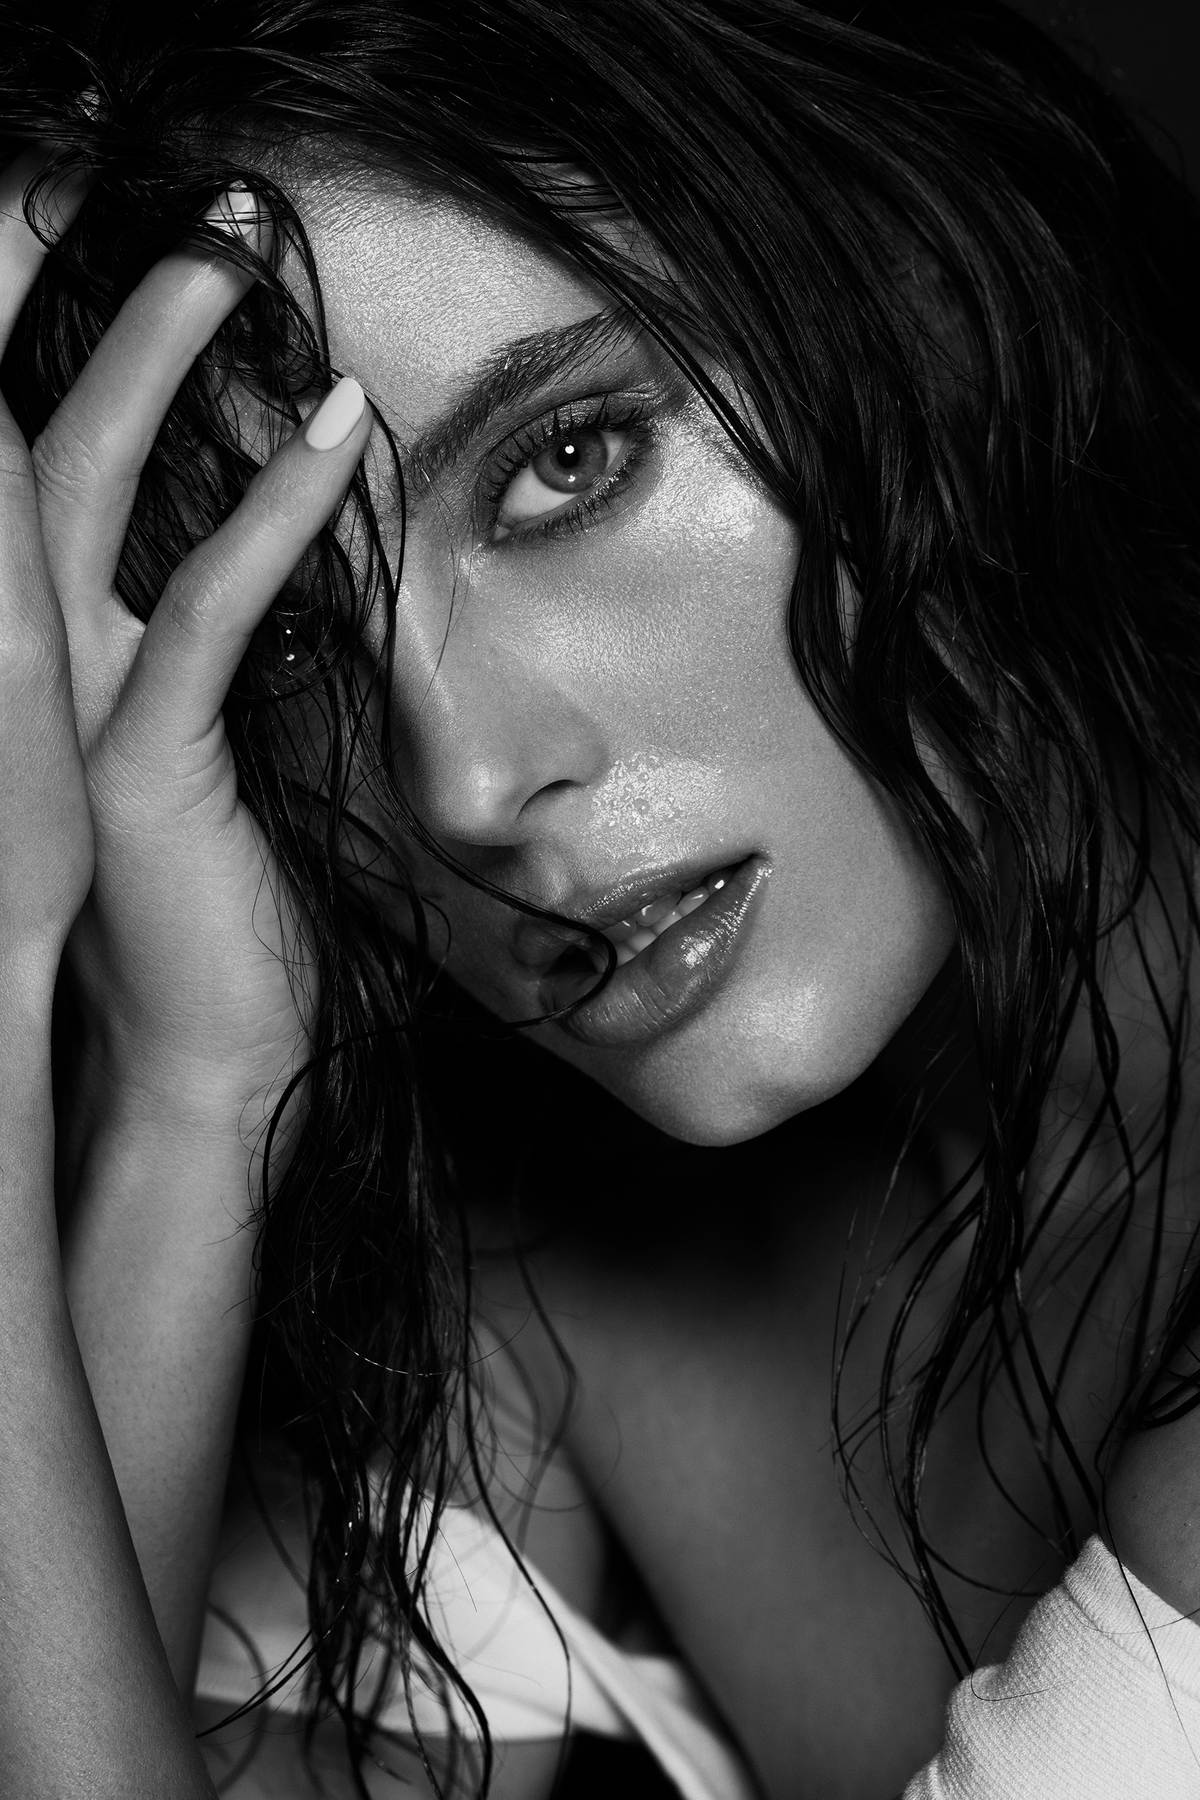 WATER_HYDRATION_glowing_sking_face_beauty_photography_los_angeles_DT_bw_LB_maggie349_v2.jpg